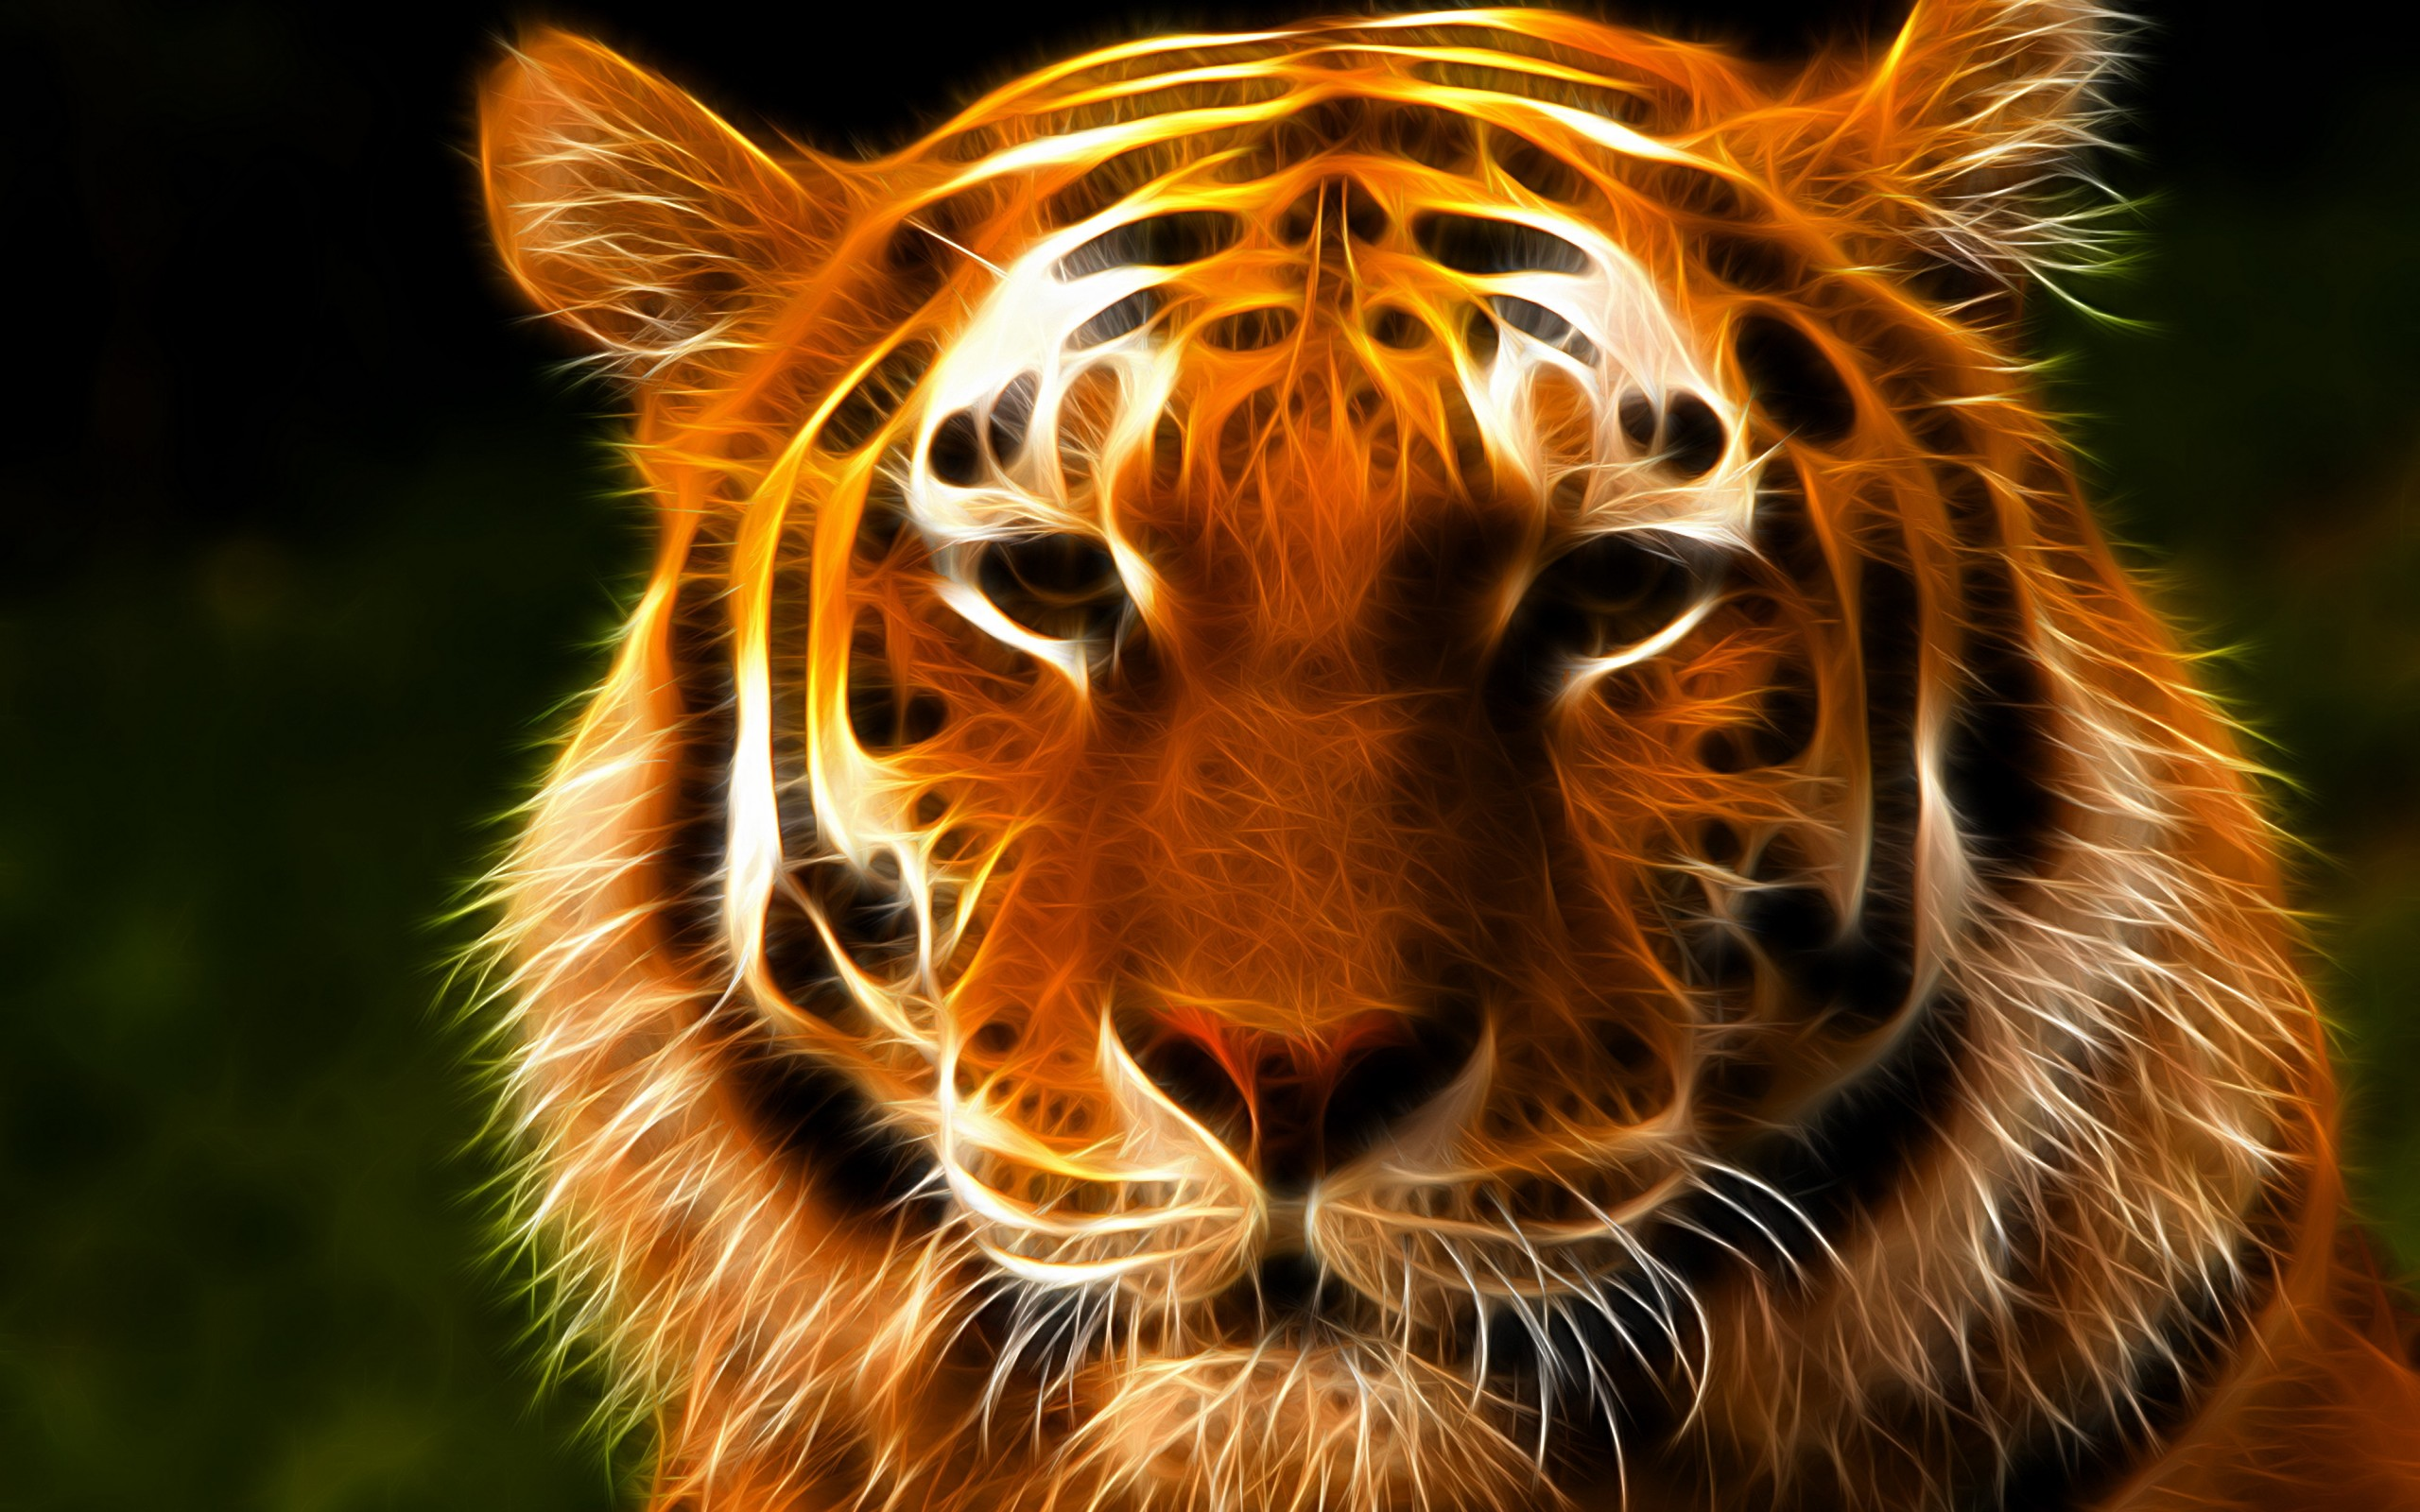 Tiger Face Eyes Fractal Wallpaper